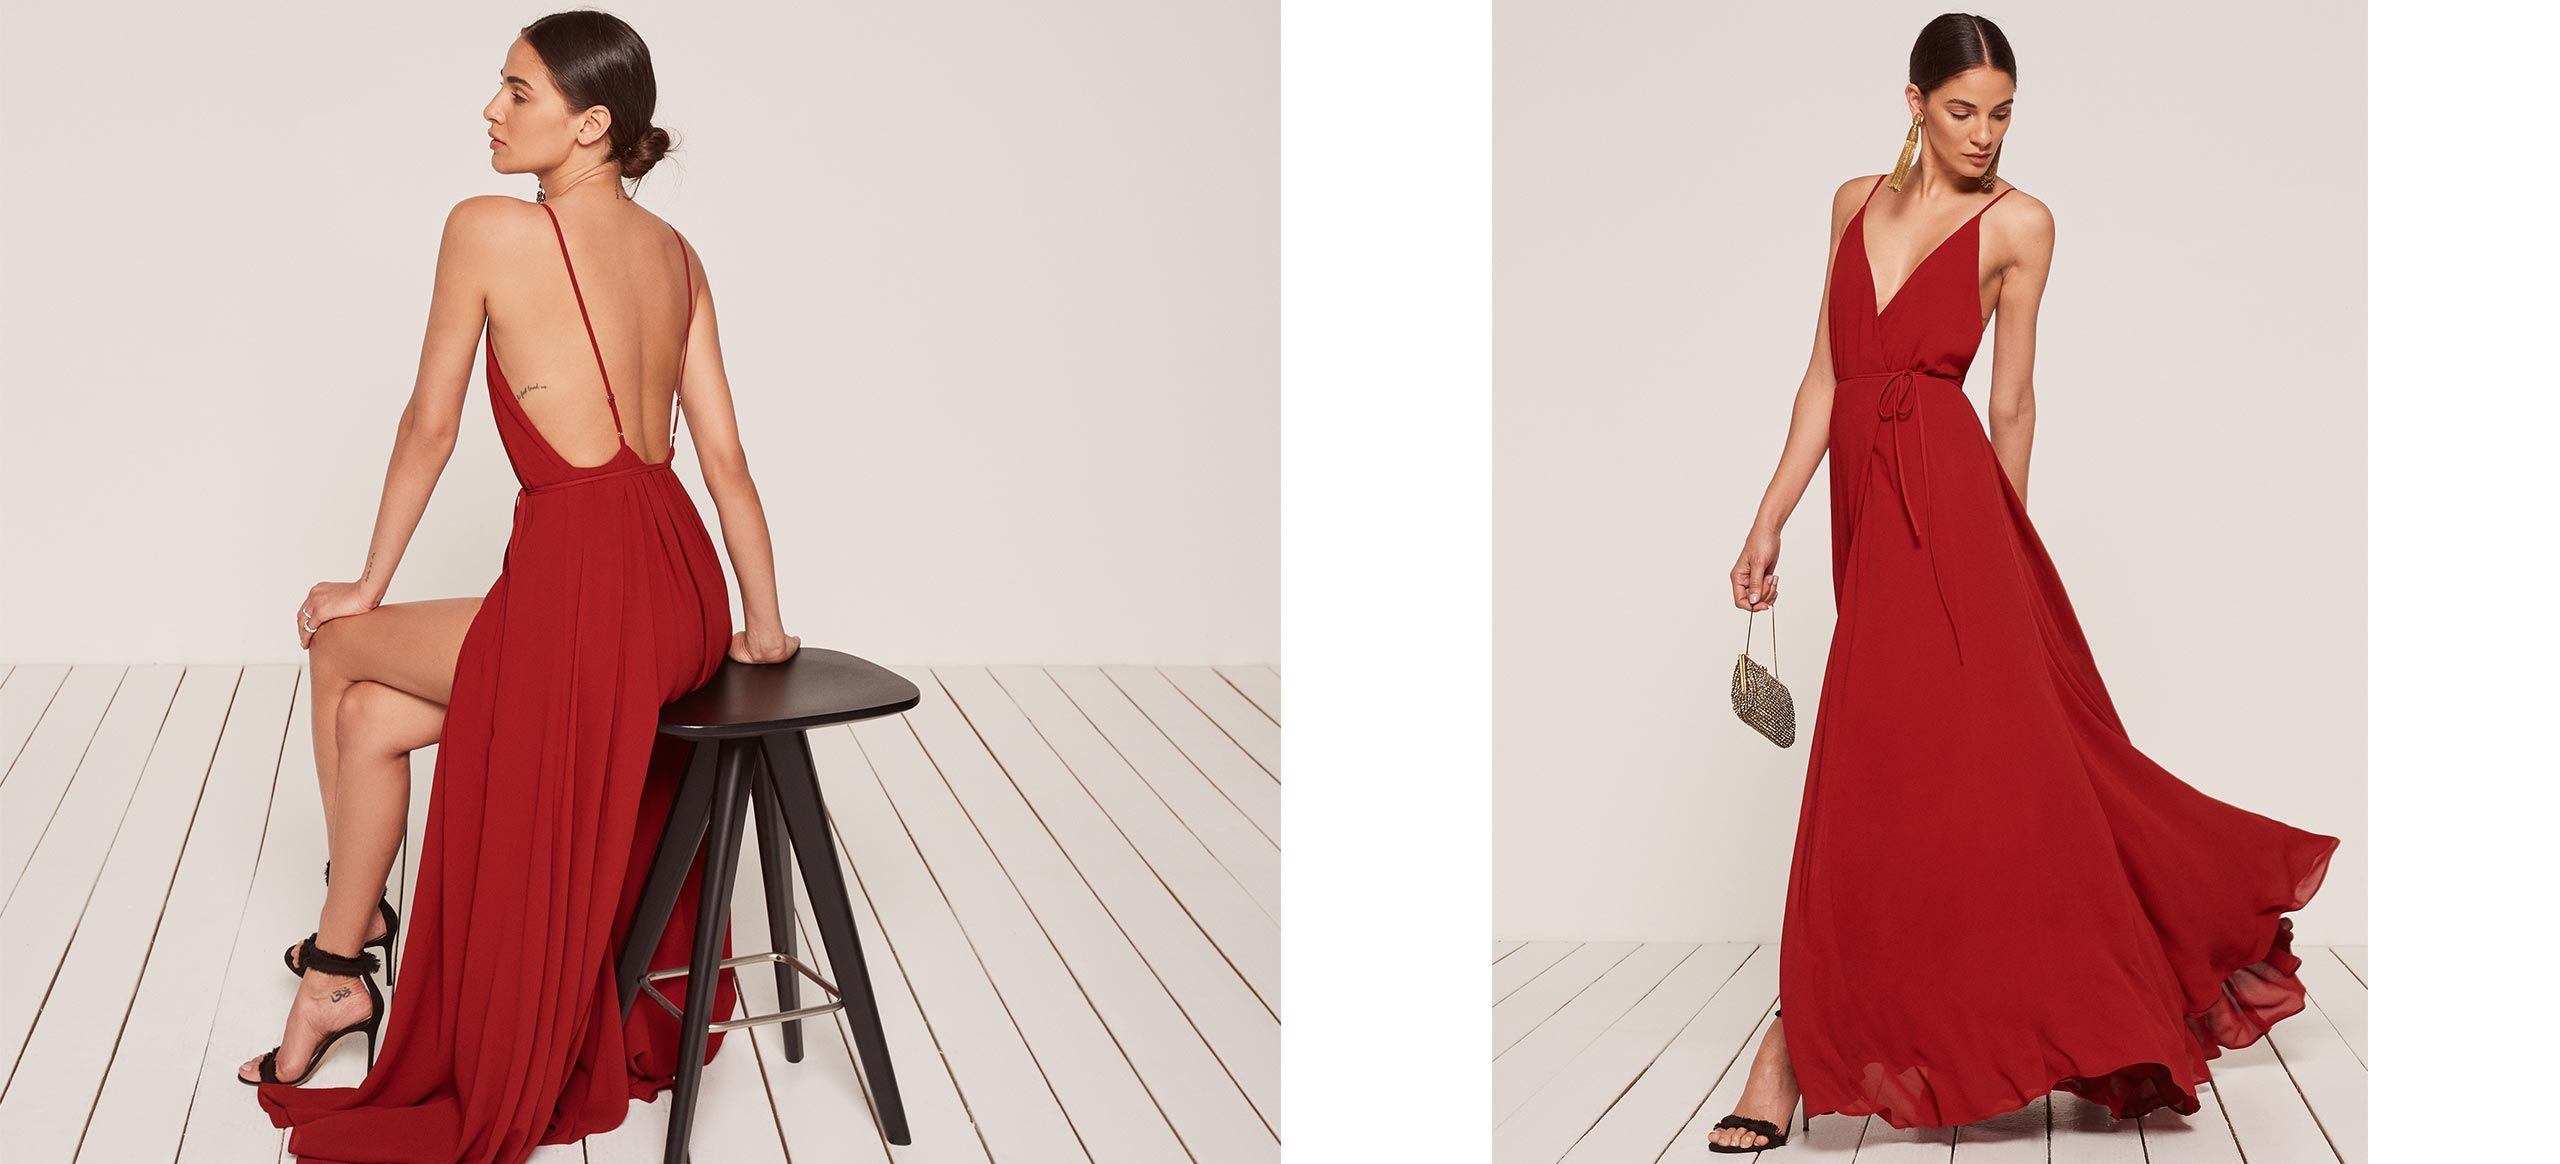 8be6fa717c3a76 For when you pretend to try to catch the bouquet. This is an open back,  wrap dress with a high slit and low v neckline.